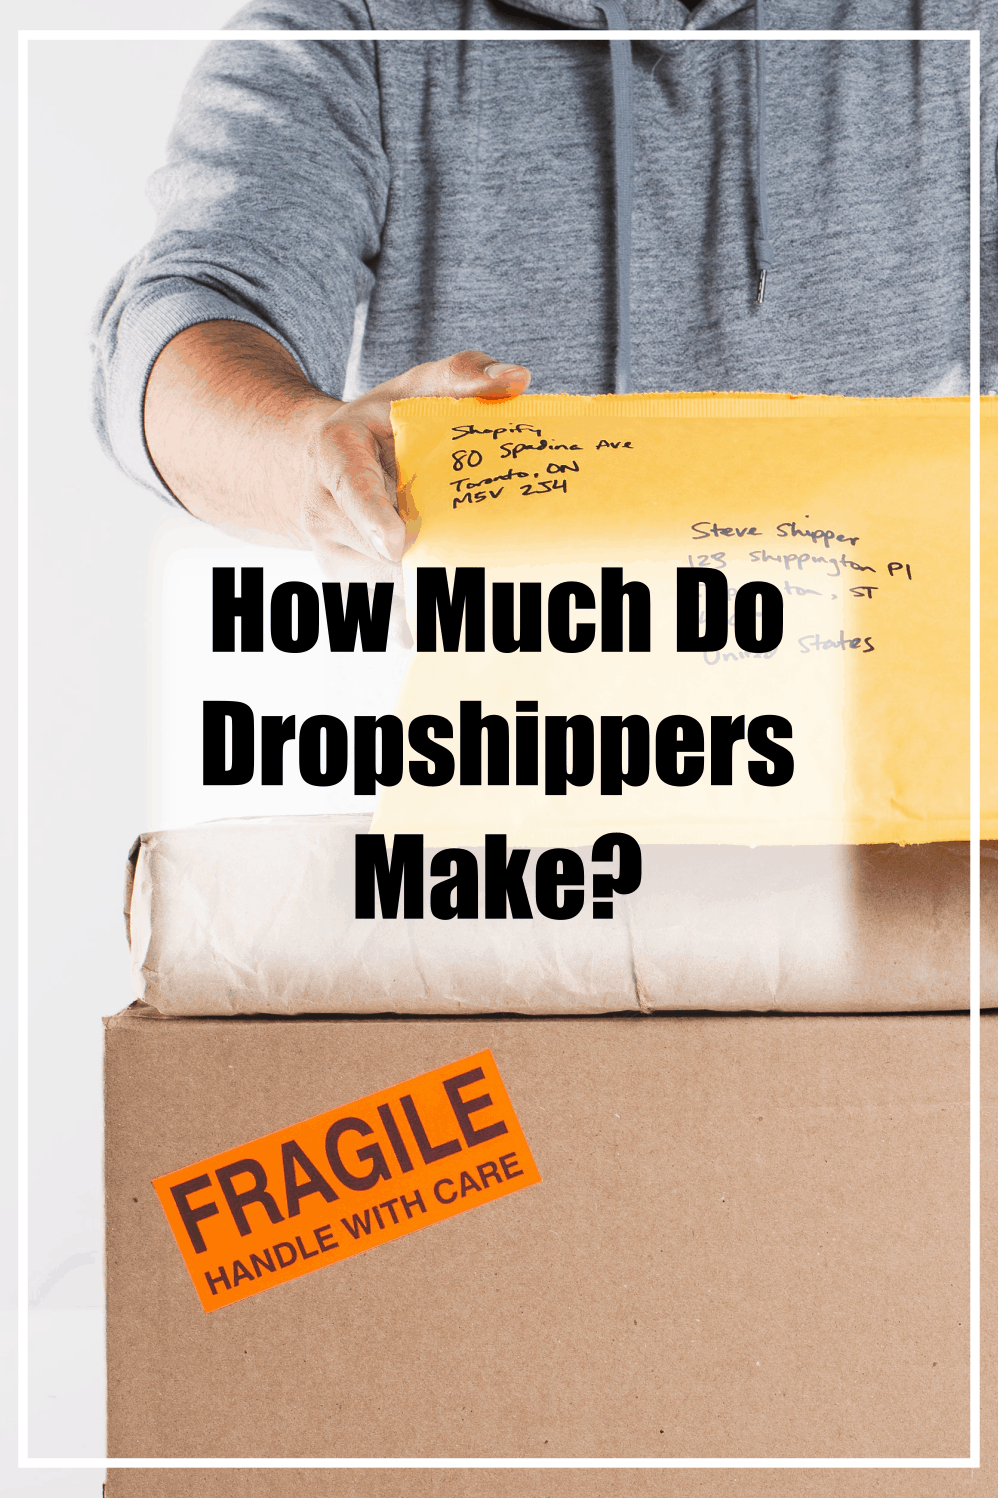 today we have shown you how much some dropshippers really make!